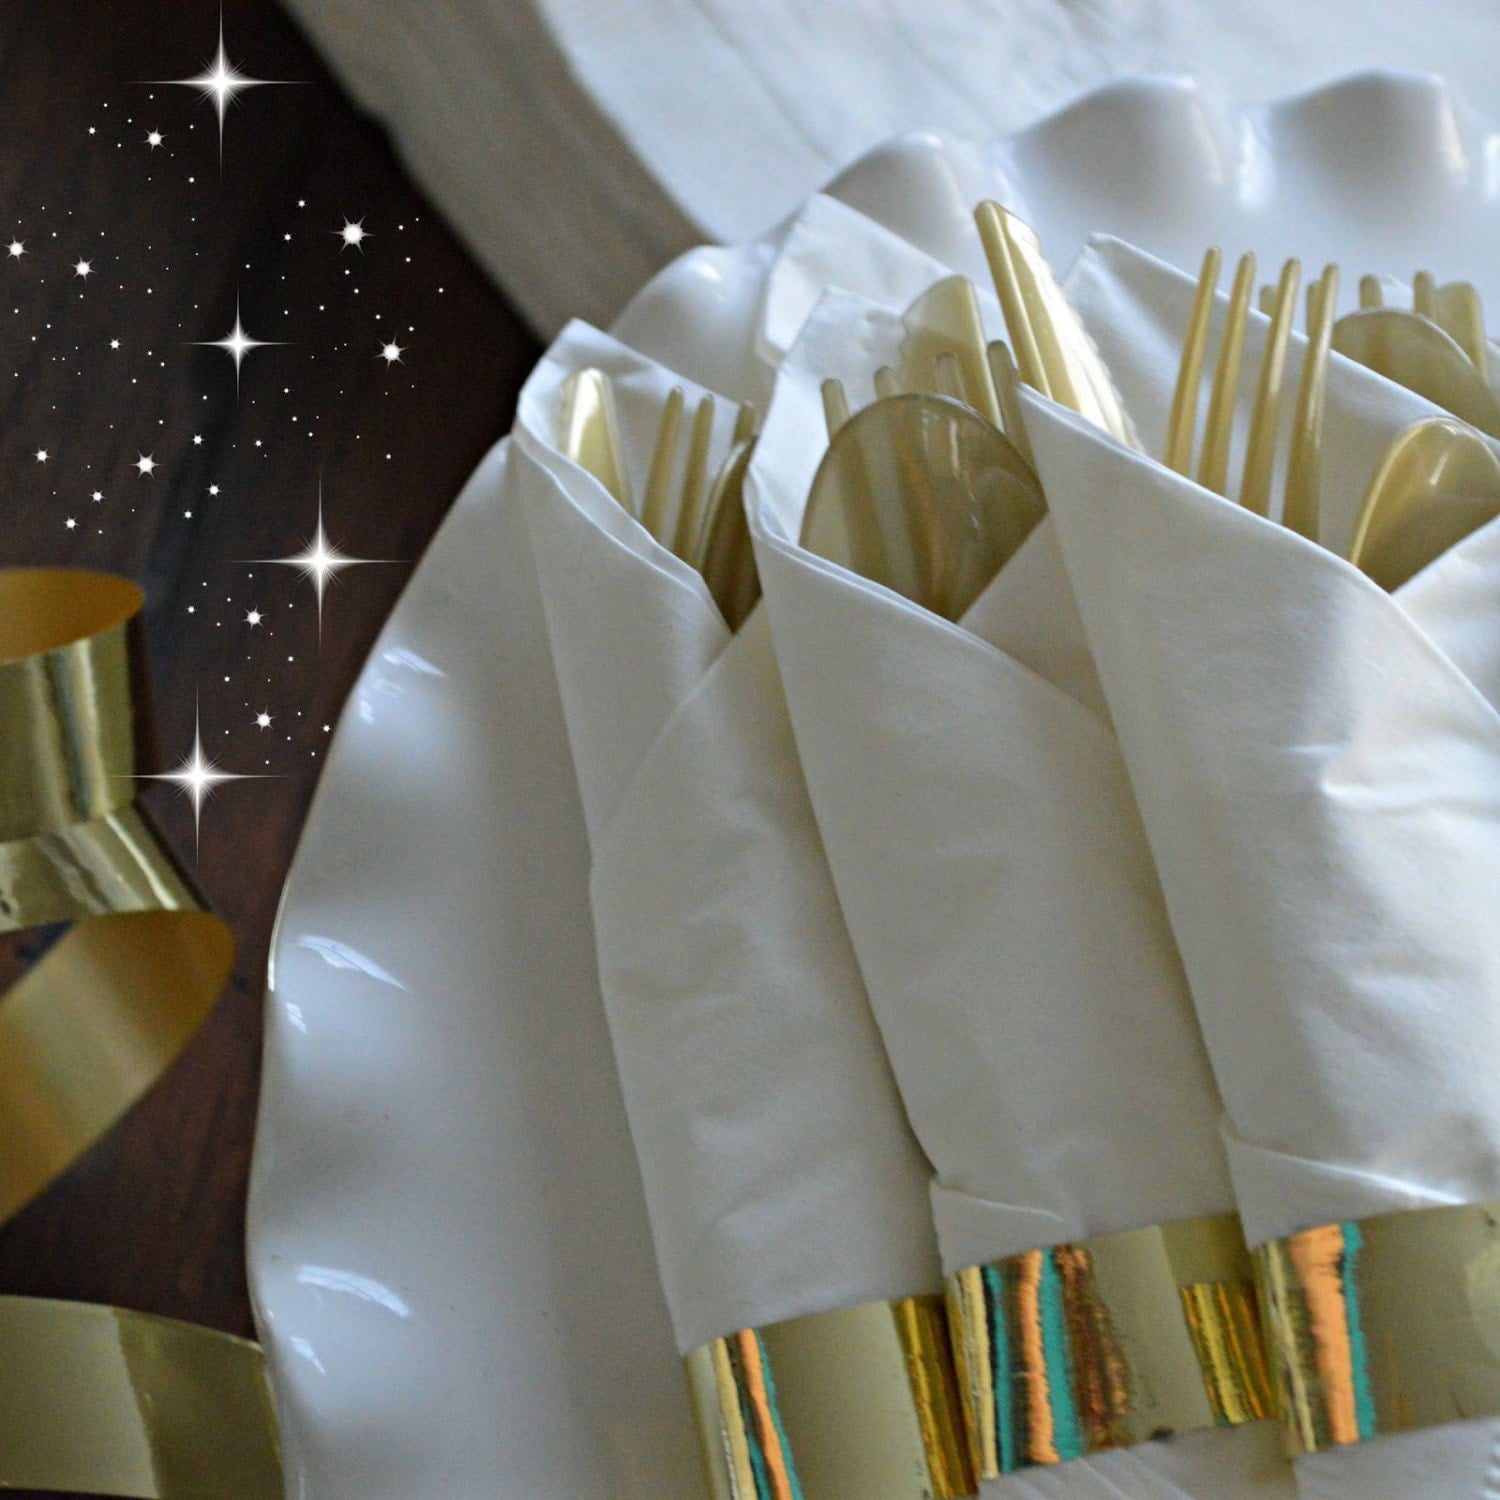 gold party decorations  gold flatware  knives folks spoons  great gastby theme  alice in